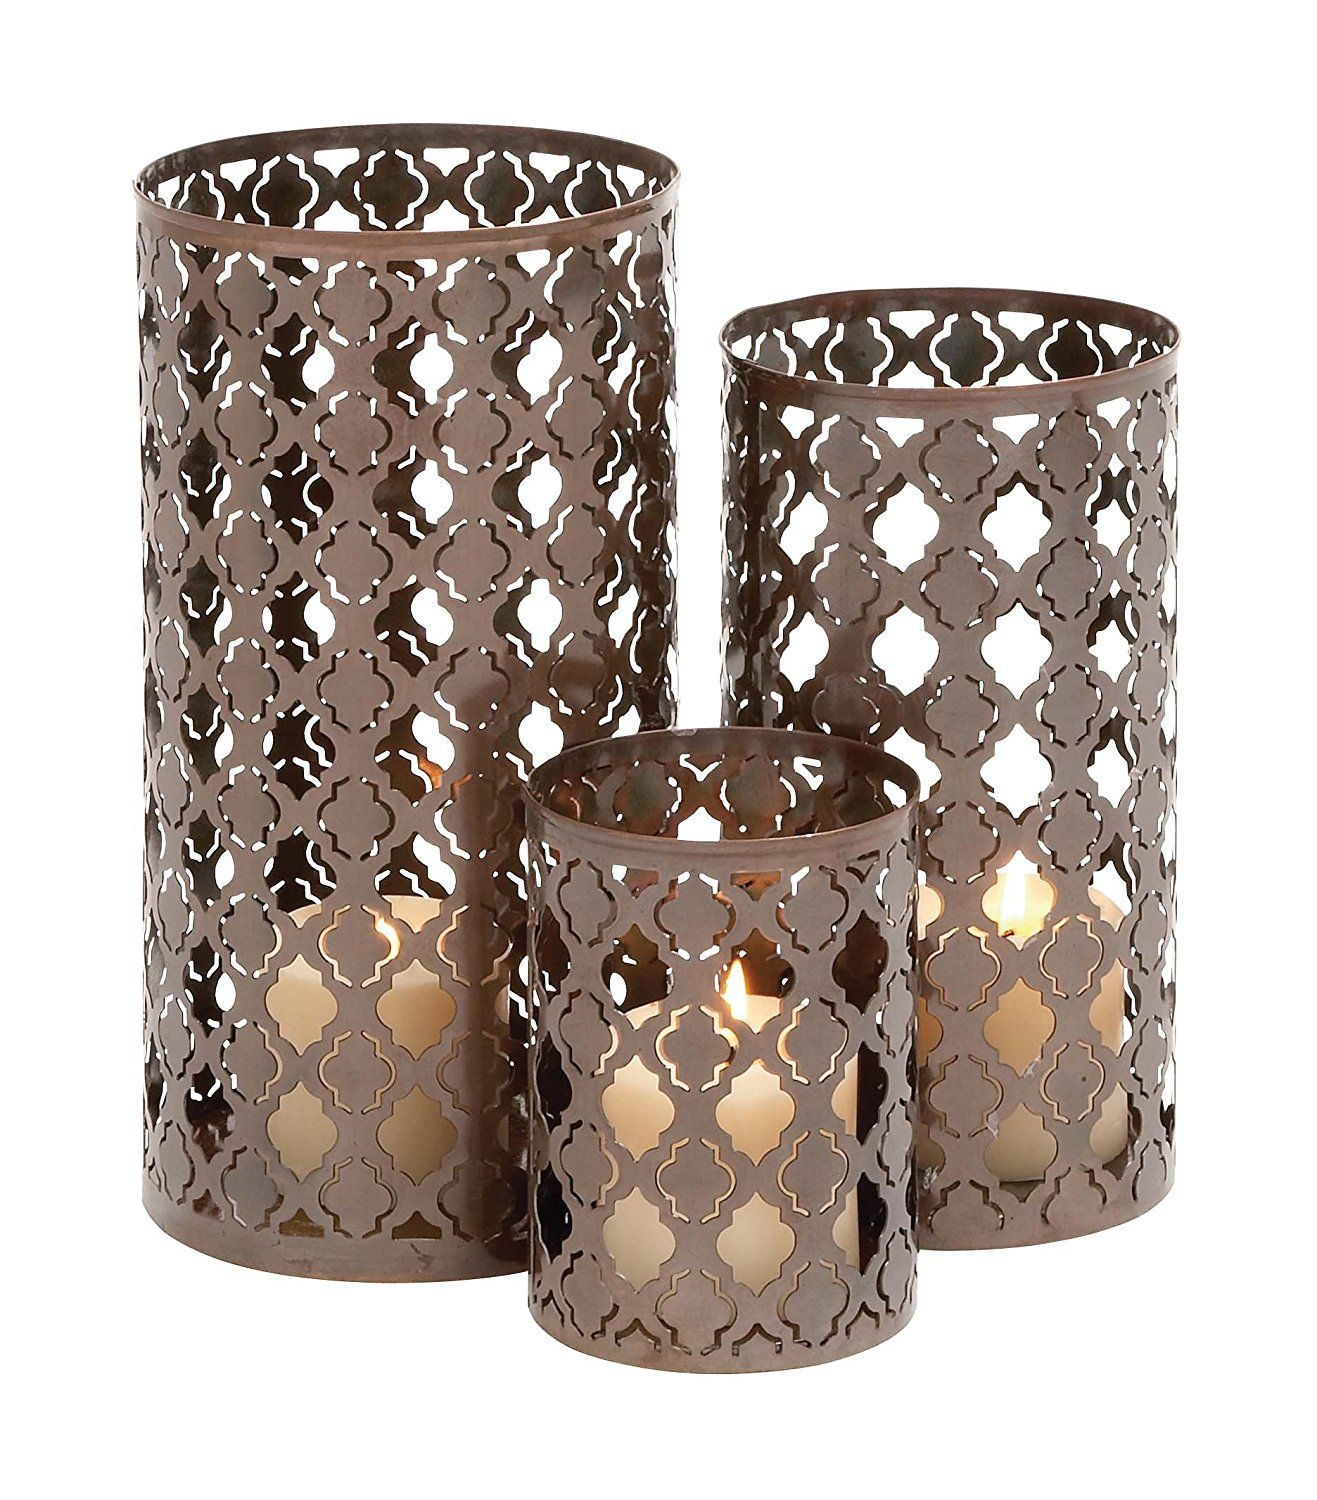 Deco 79 quatrefoil metal candle holder 12 by 10 by 6inch